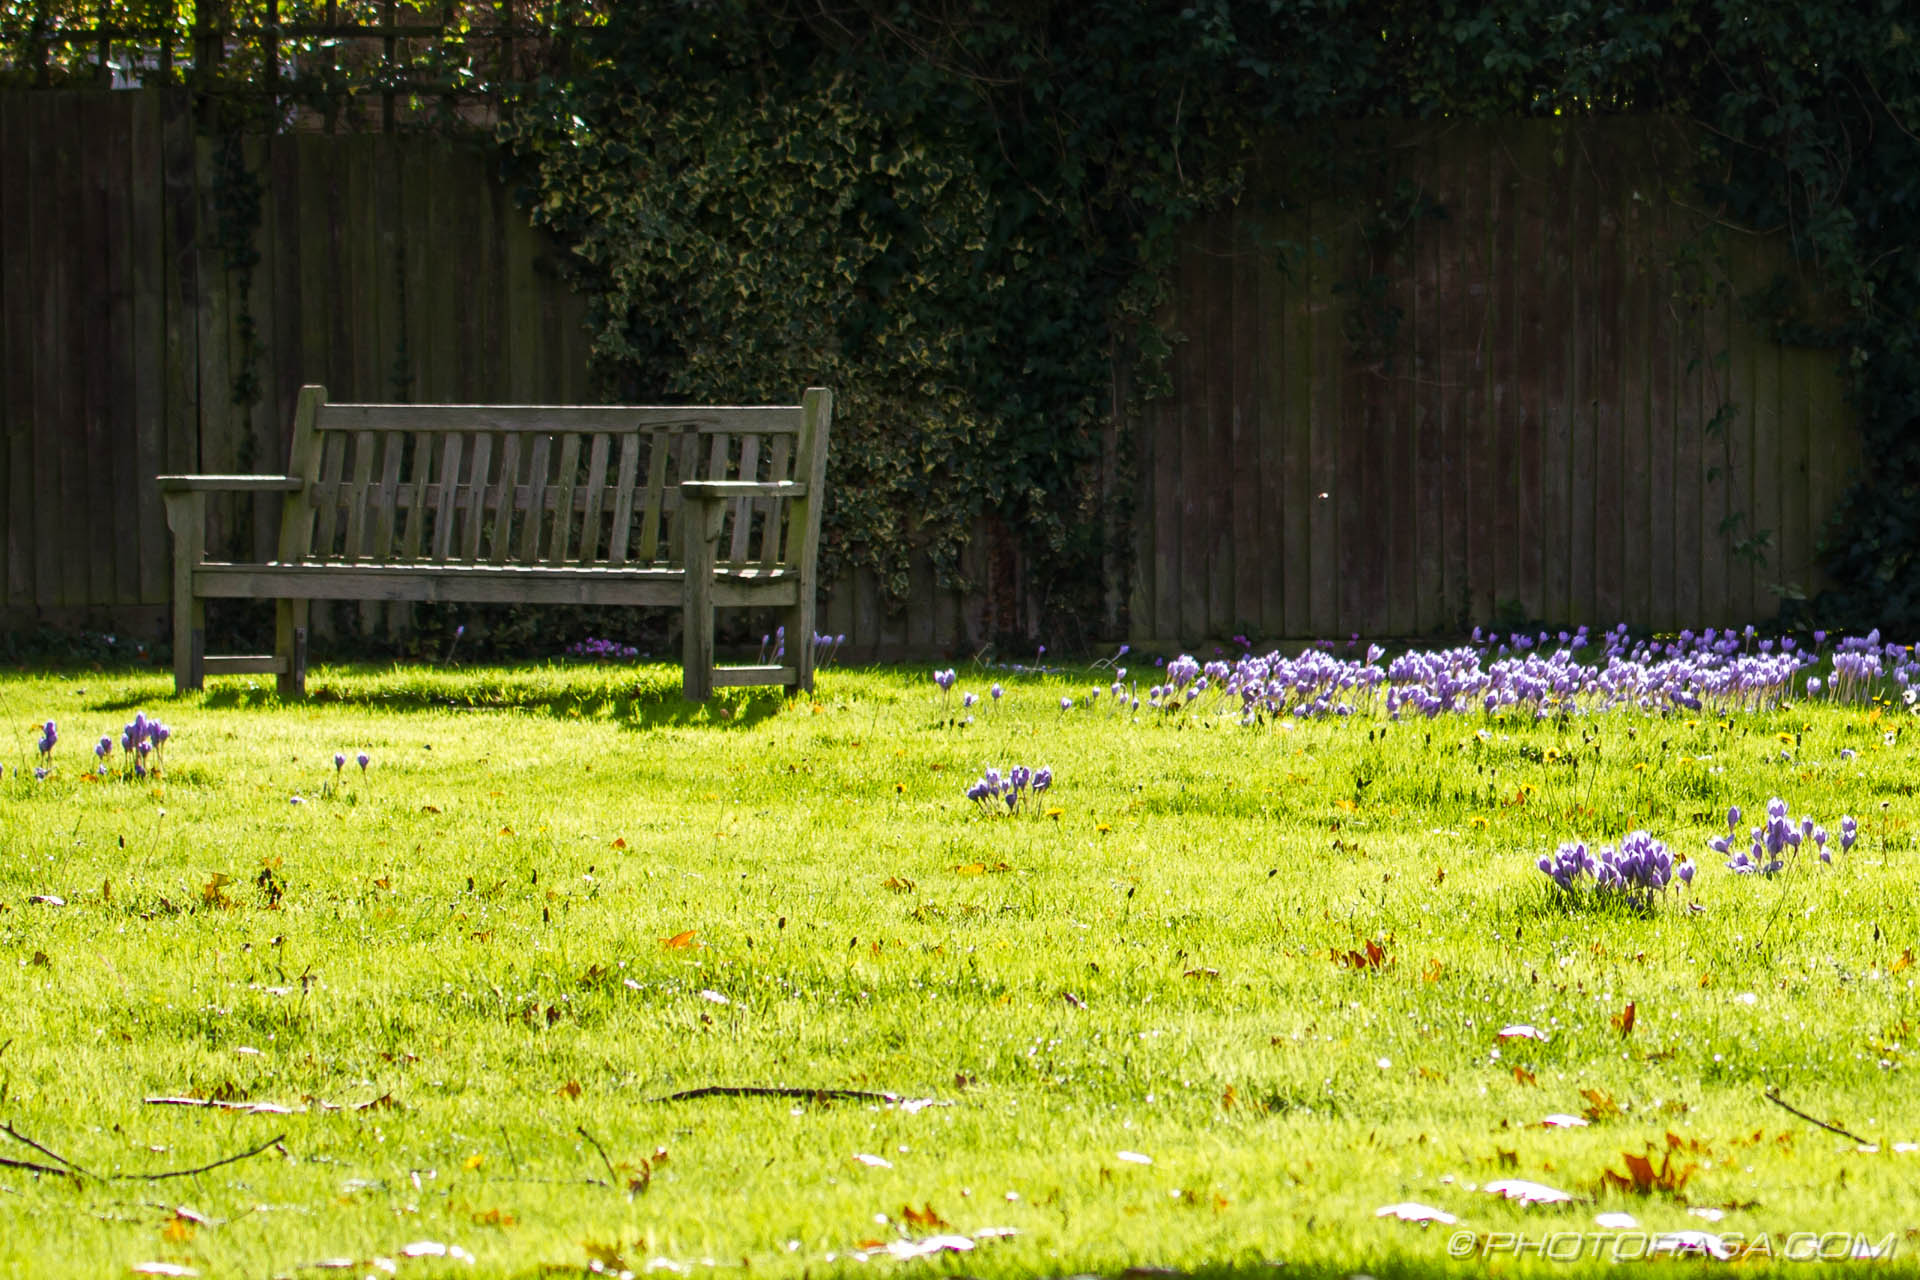 http://photorasa.com/purple-autumn-crocuses/bench-and-crocuses-on-boughton-green/